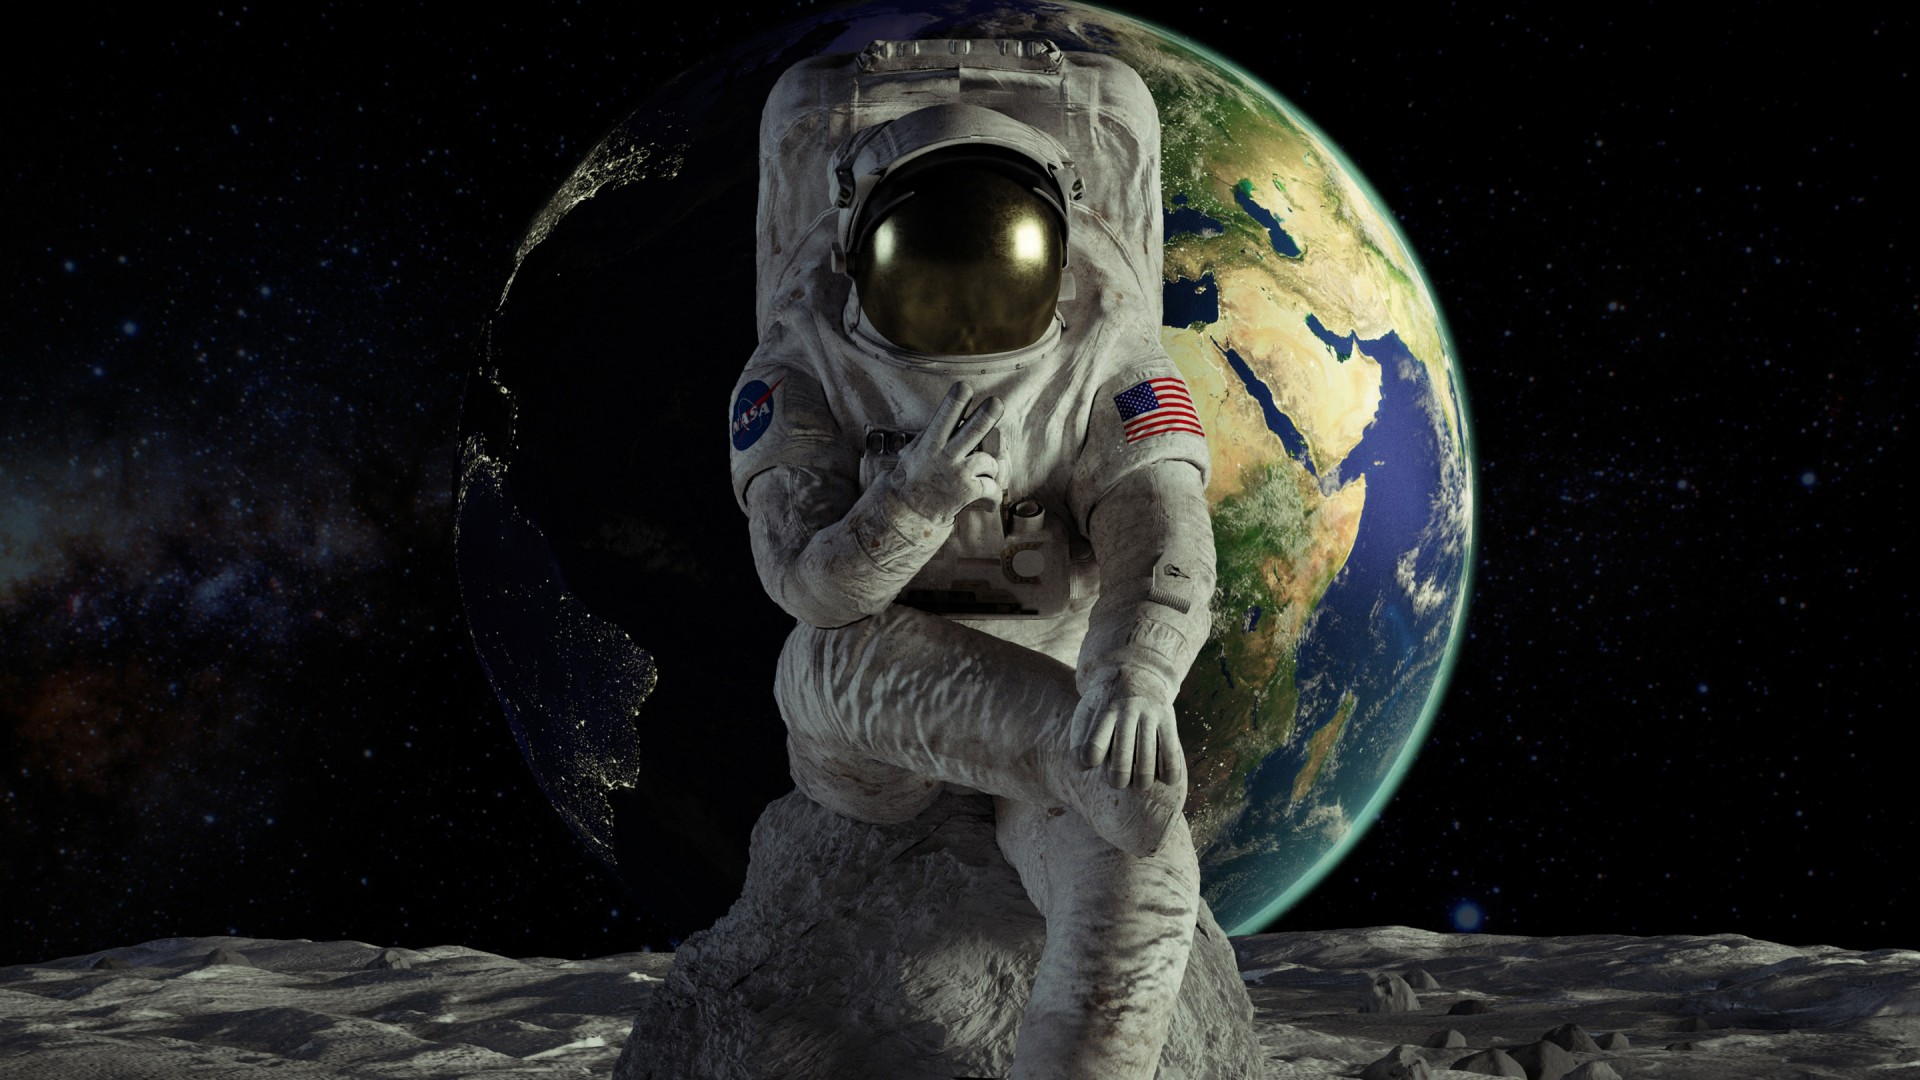 Hd Wallpapers For Windows 7 Download Astronaut Wallpapers Hd Wallpapers Id 27236